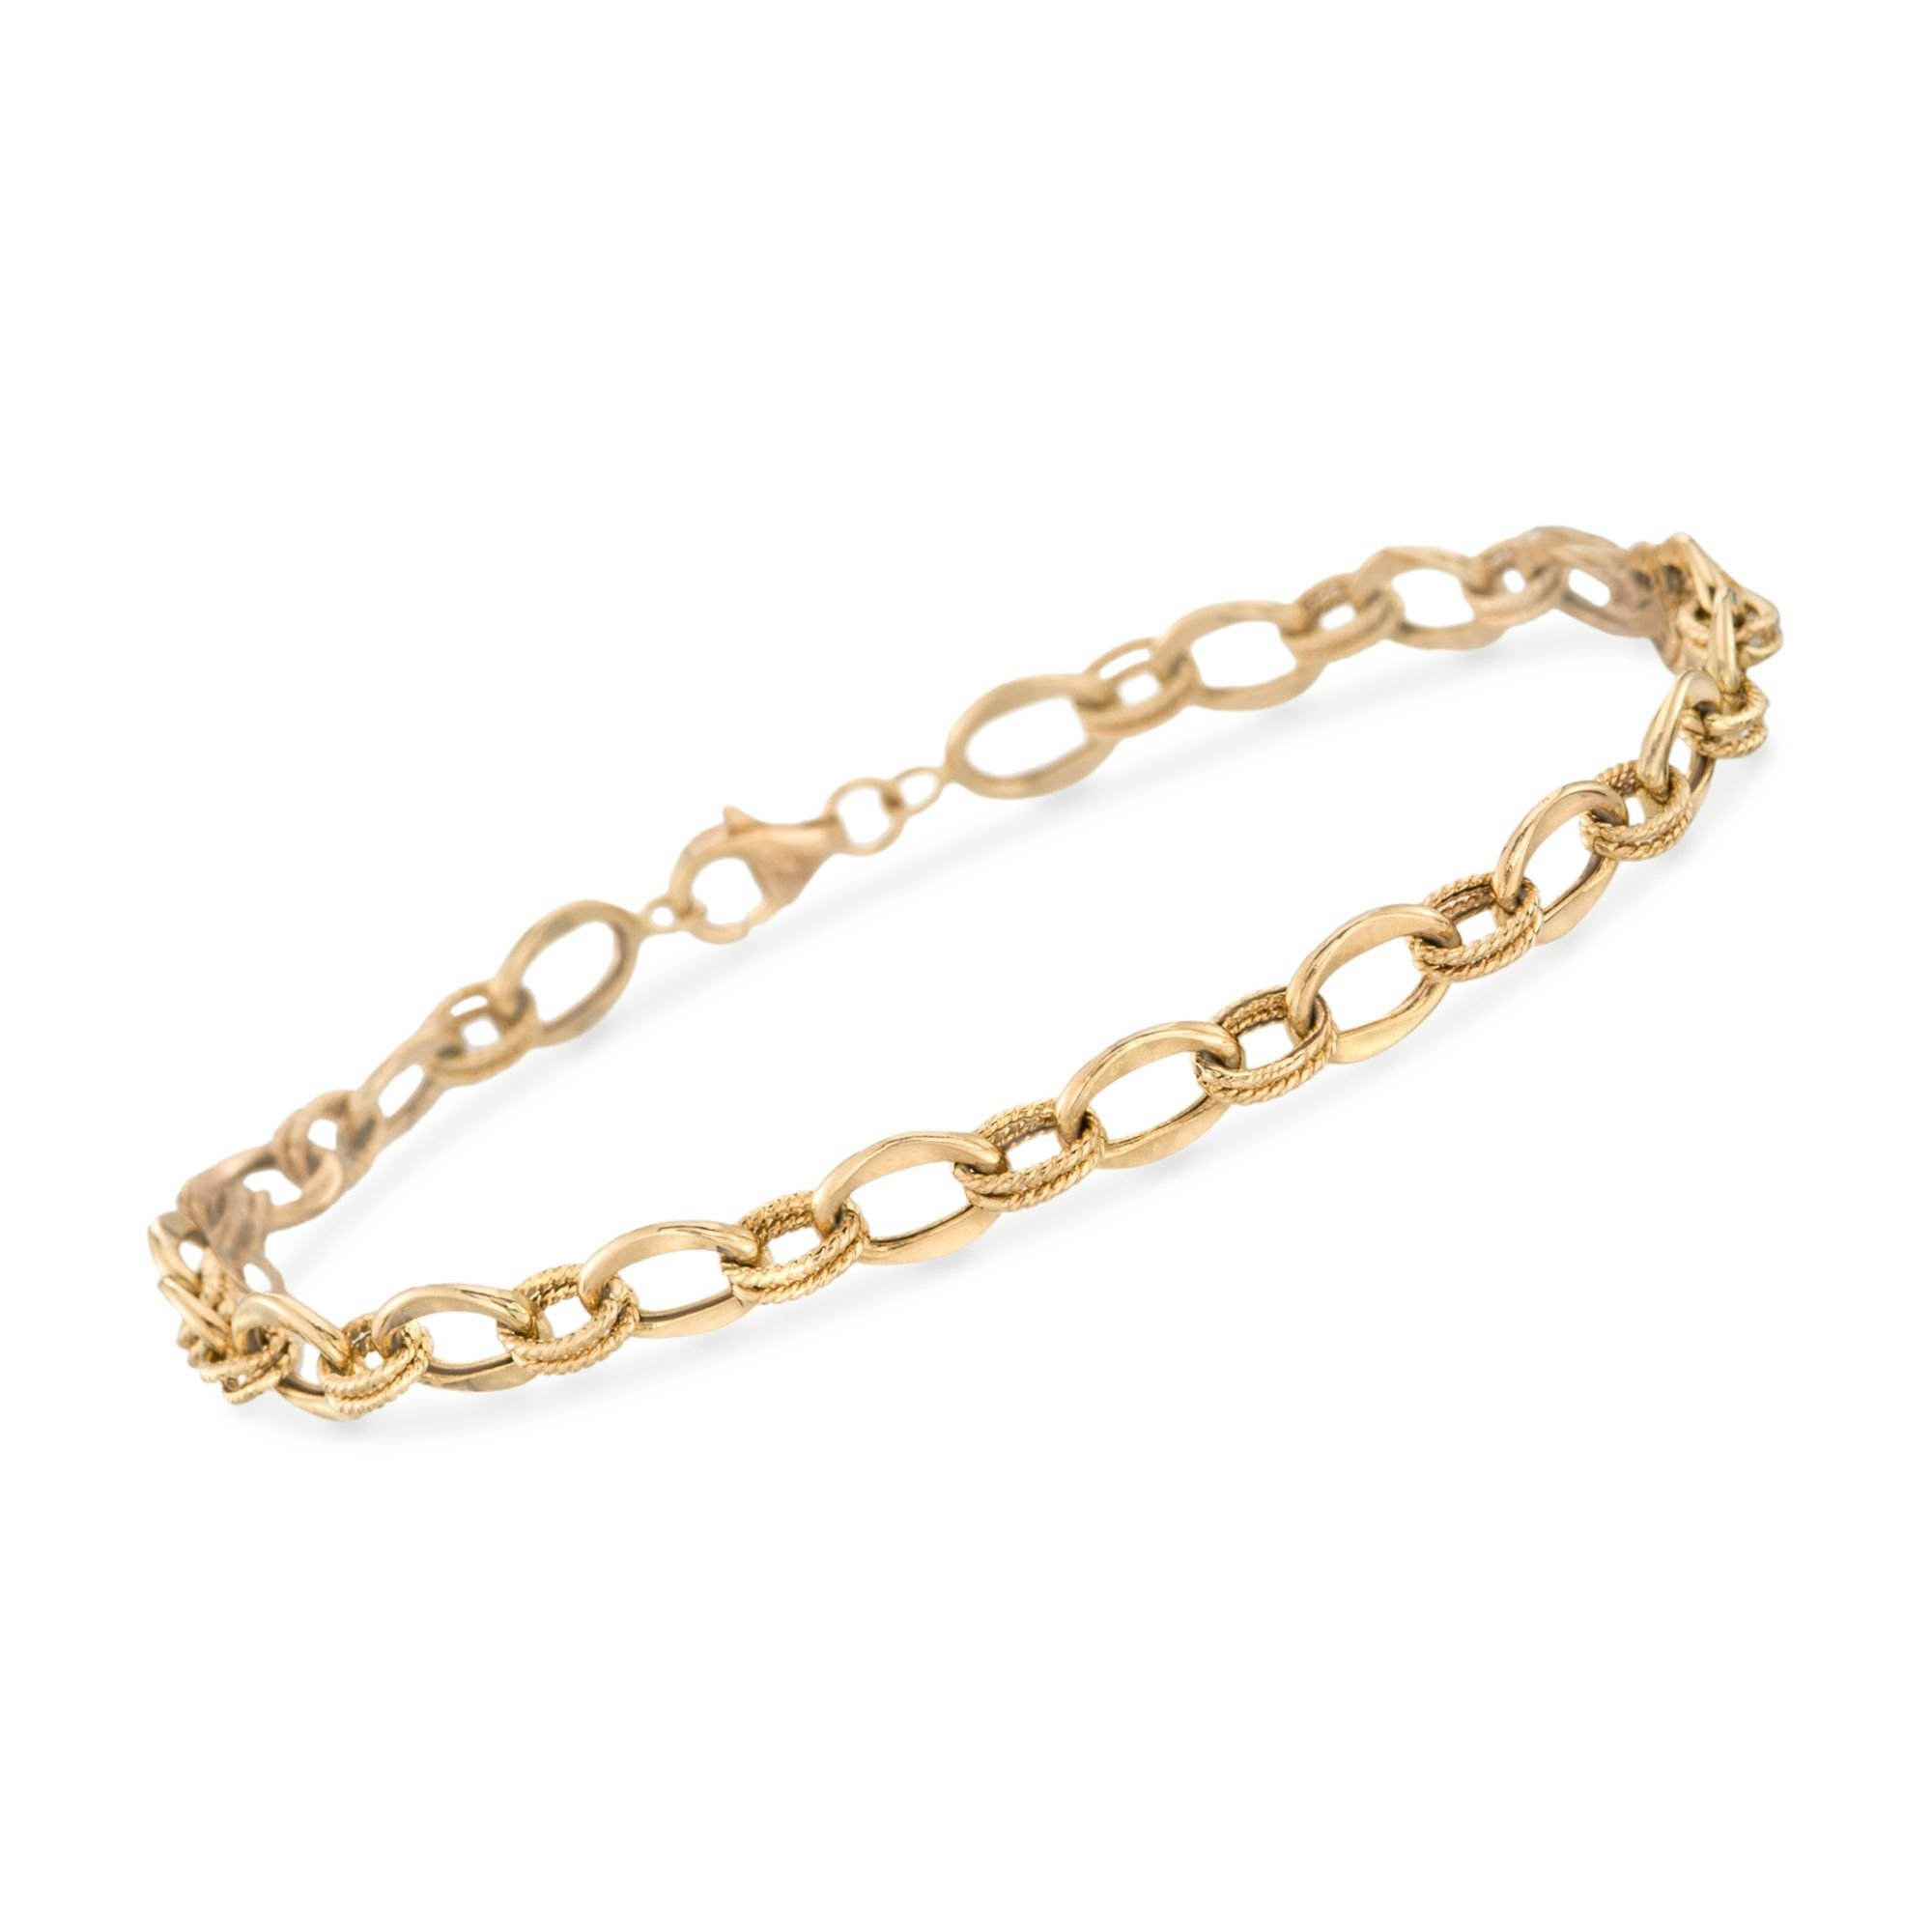 Ross-Simons 14kt Yellow Gold Textured and Polished Oval-Link Bracelet